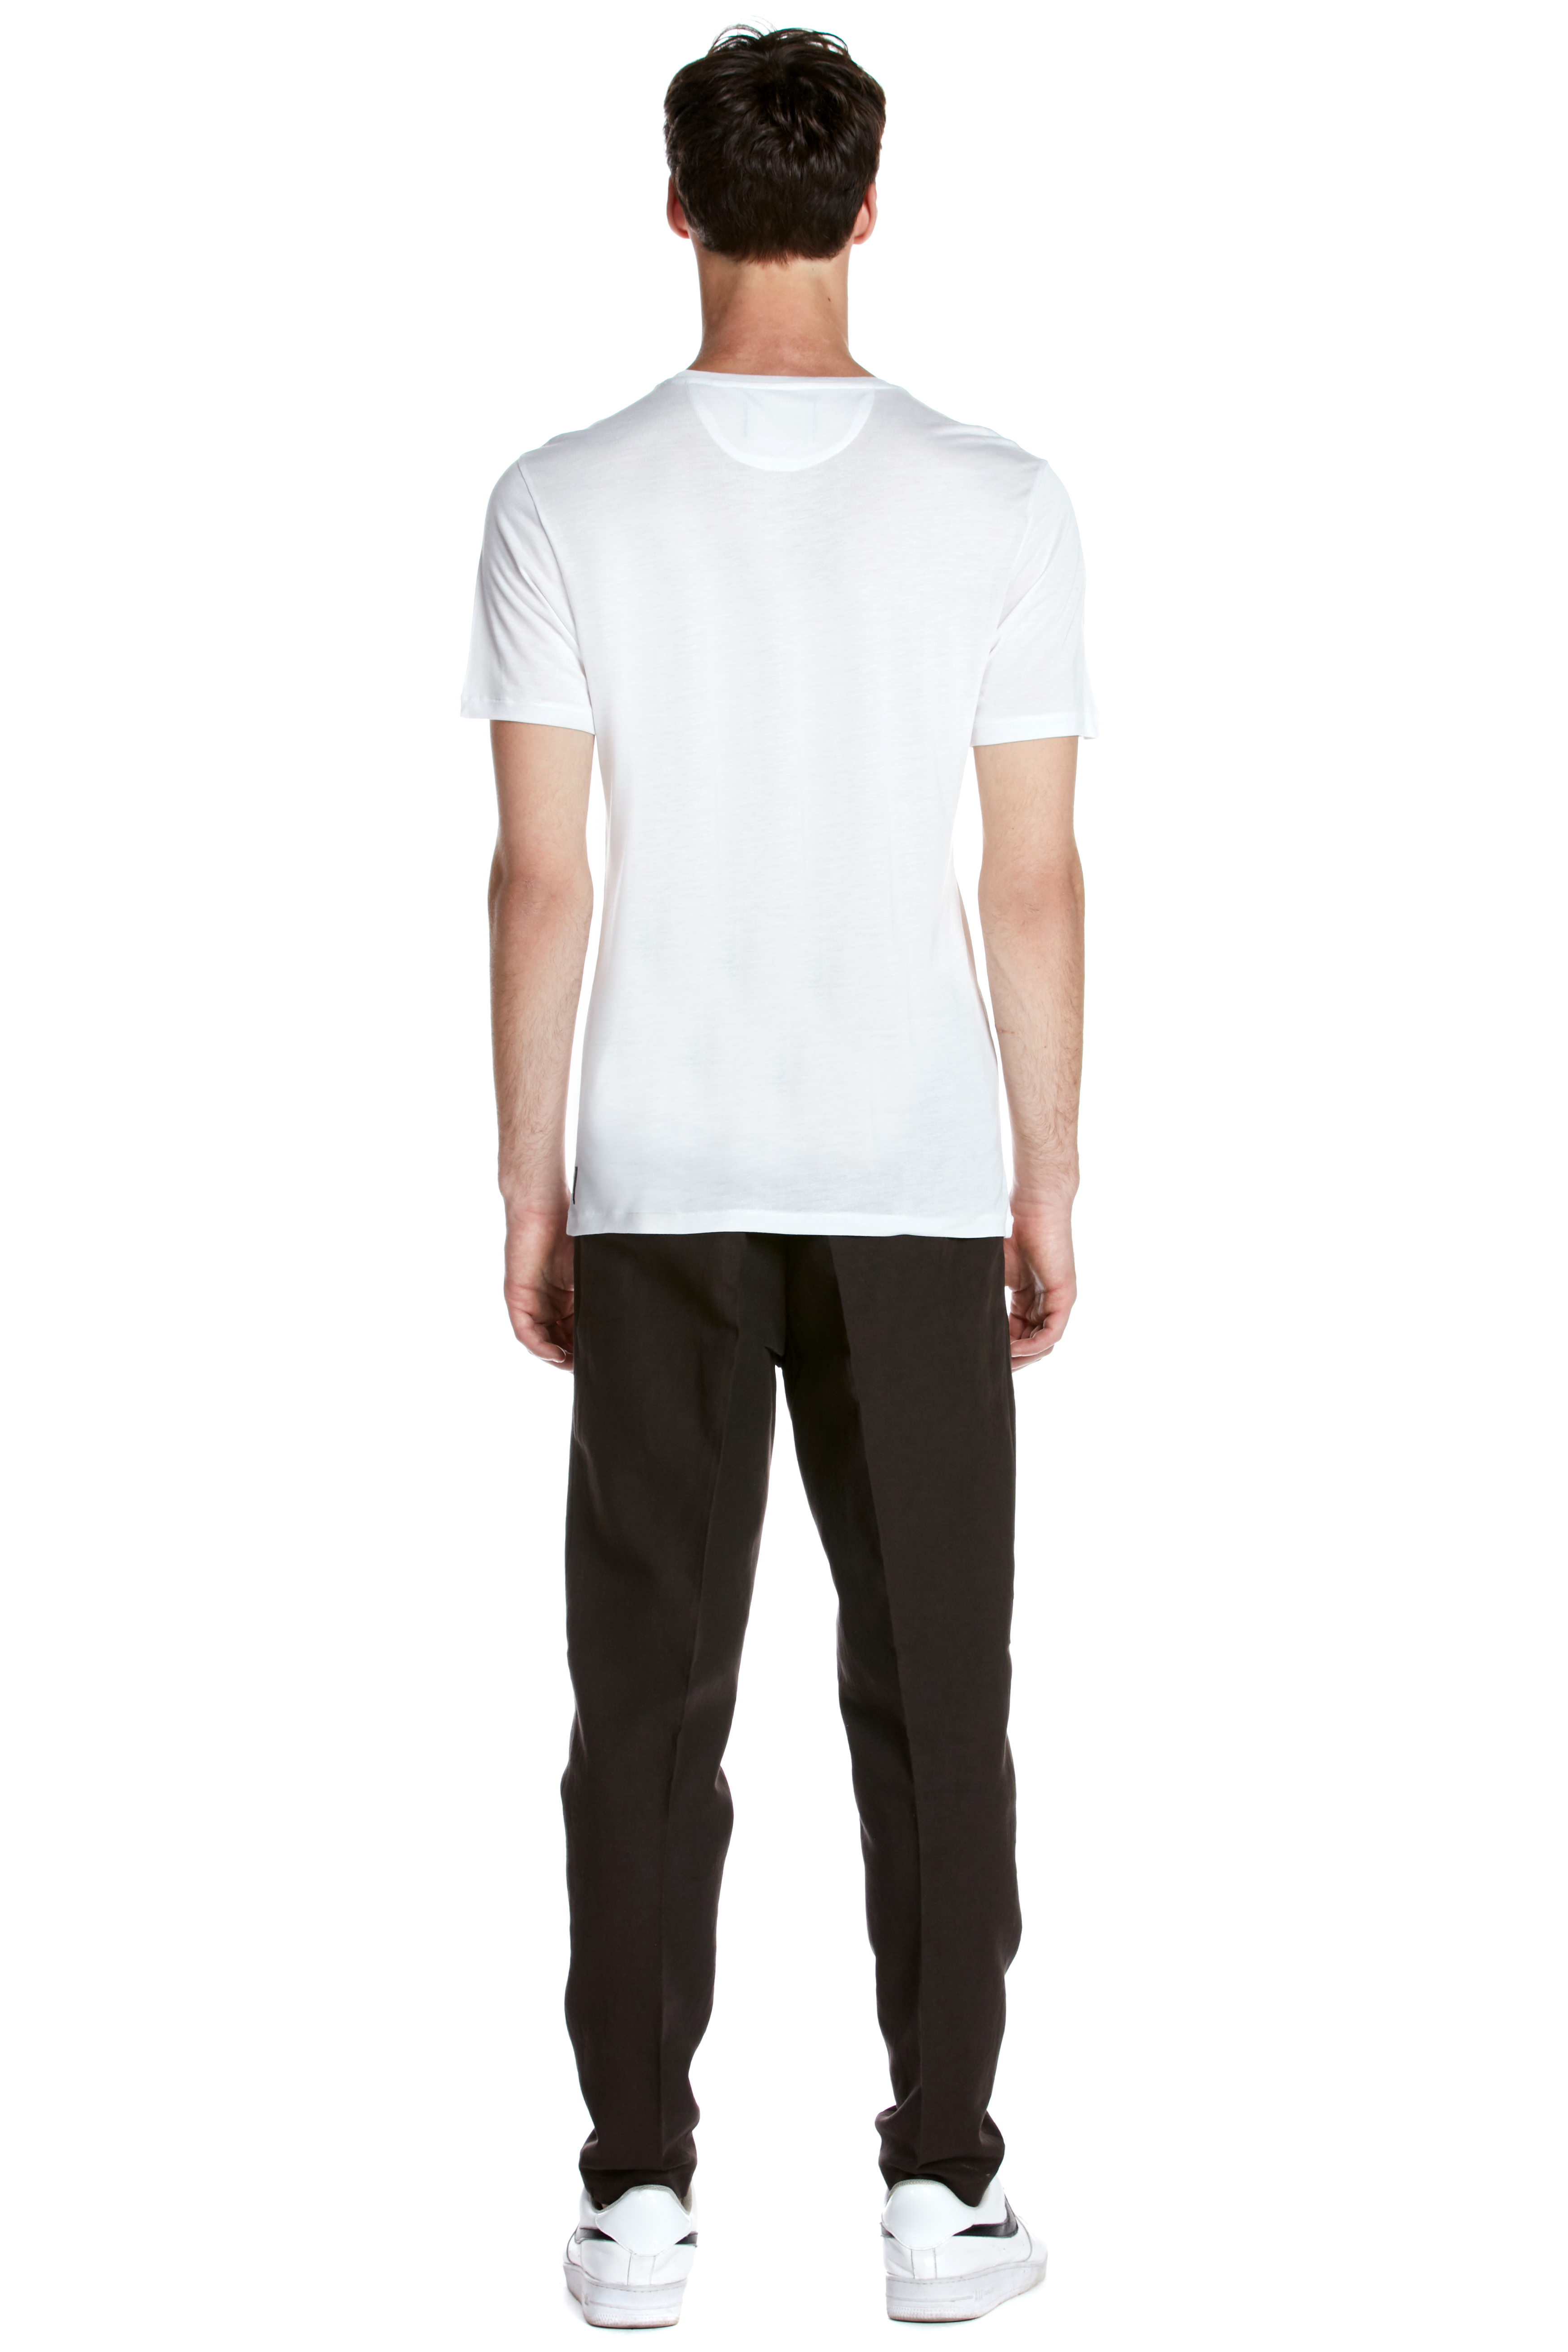 Tailor made tee brand who for Tailor made shirts online